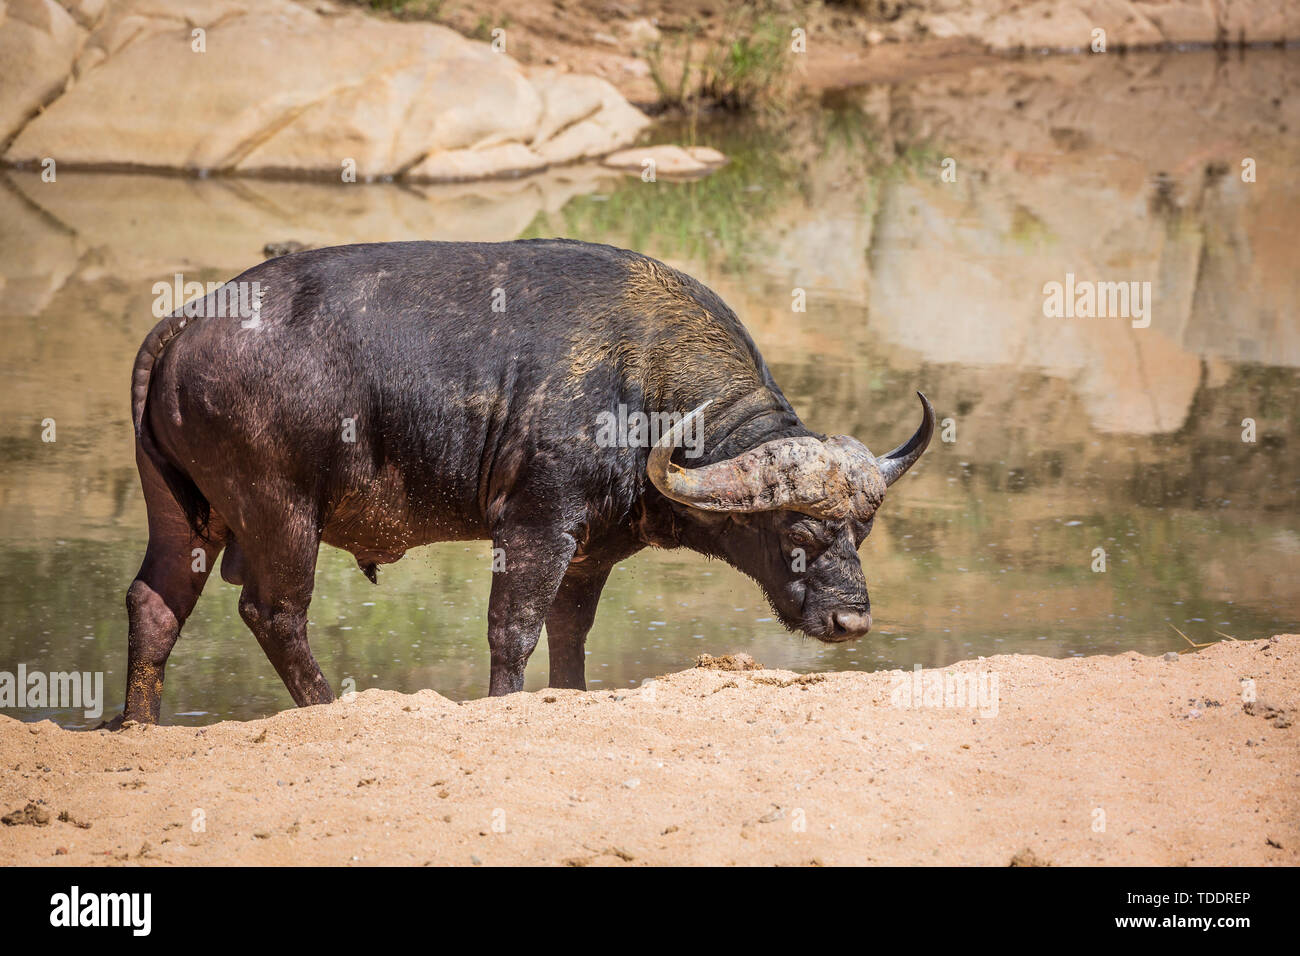 African buffalo ruminating on river bank in Kruger National park, South Africa ; Specie Syncerus caffer family of Bovidae - Stock Image